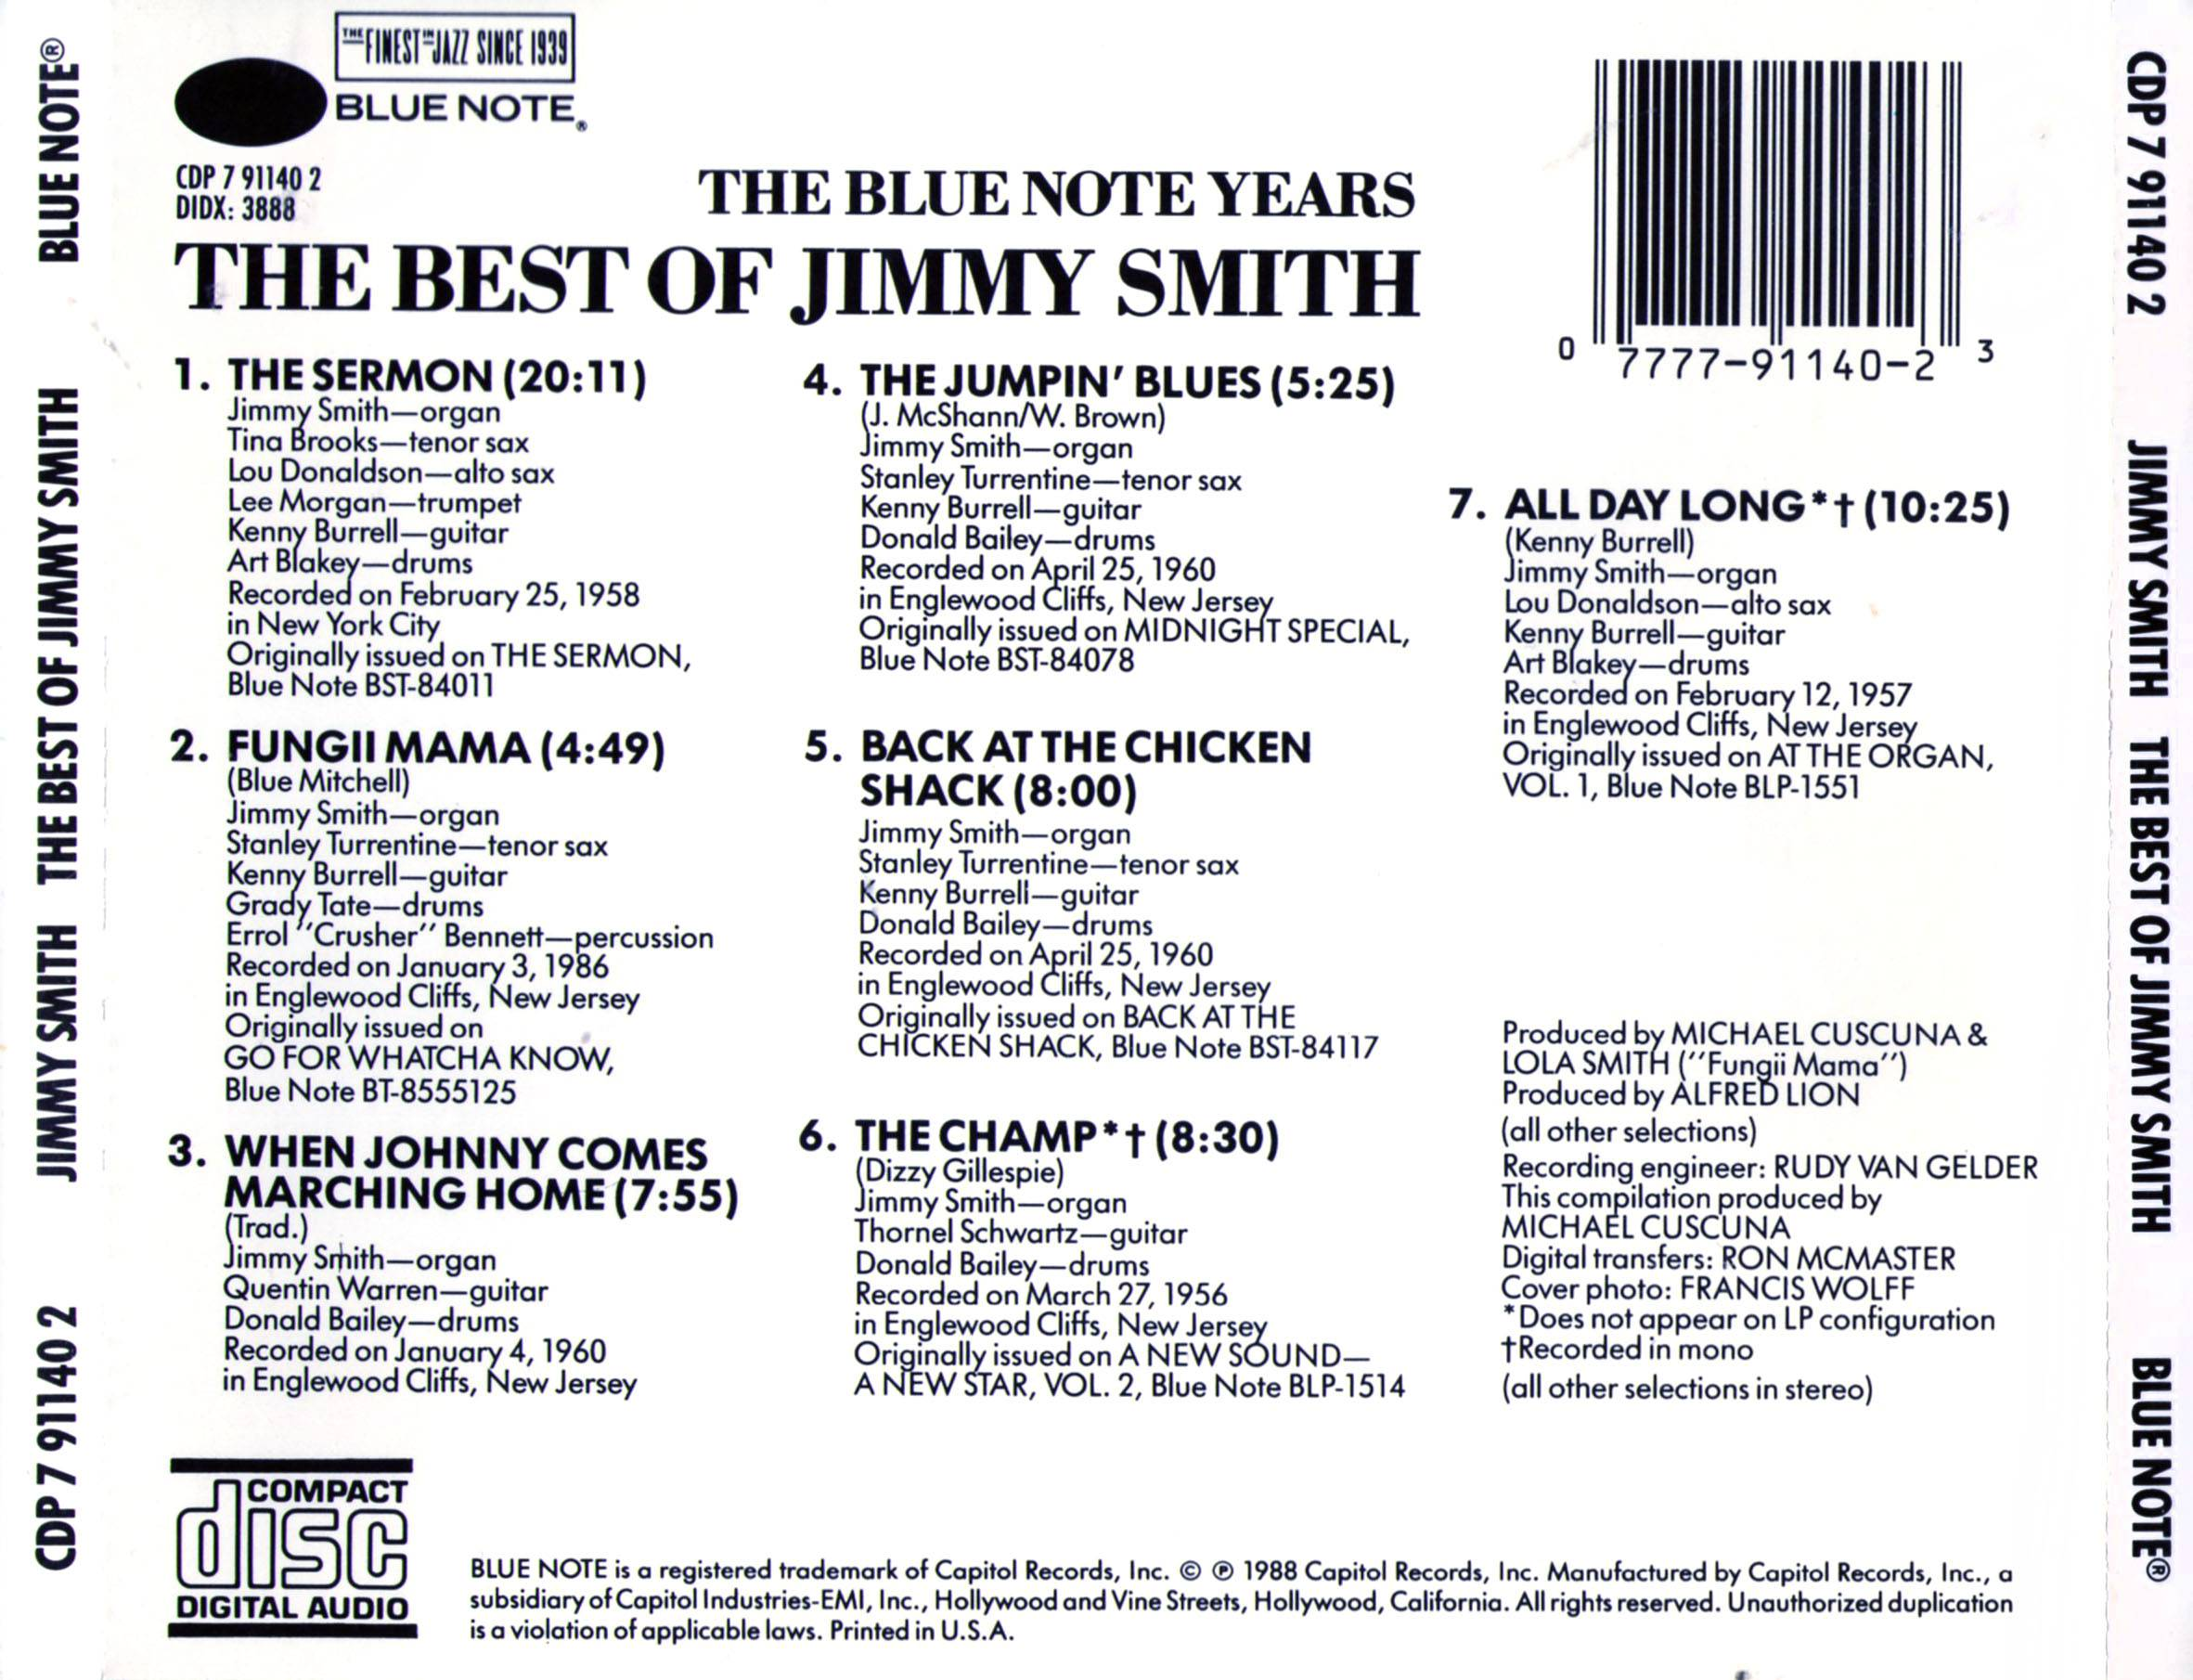 Jimmy Smith - The Best Of Jimmy Smith: The Blue Note Years (1988)